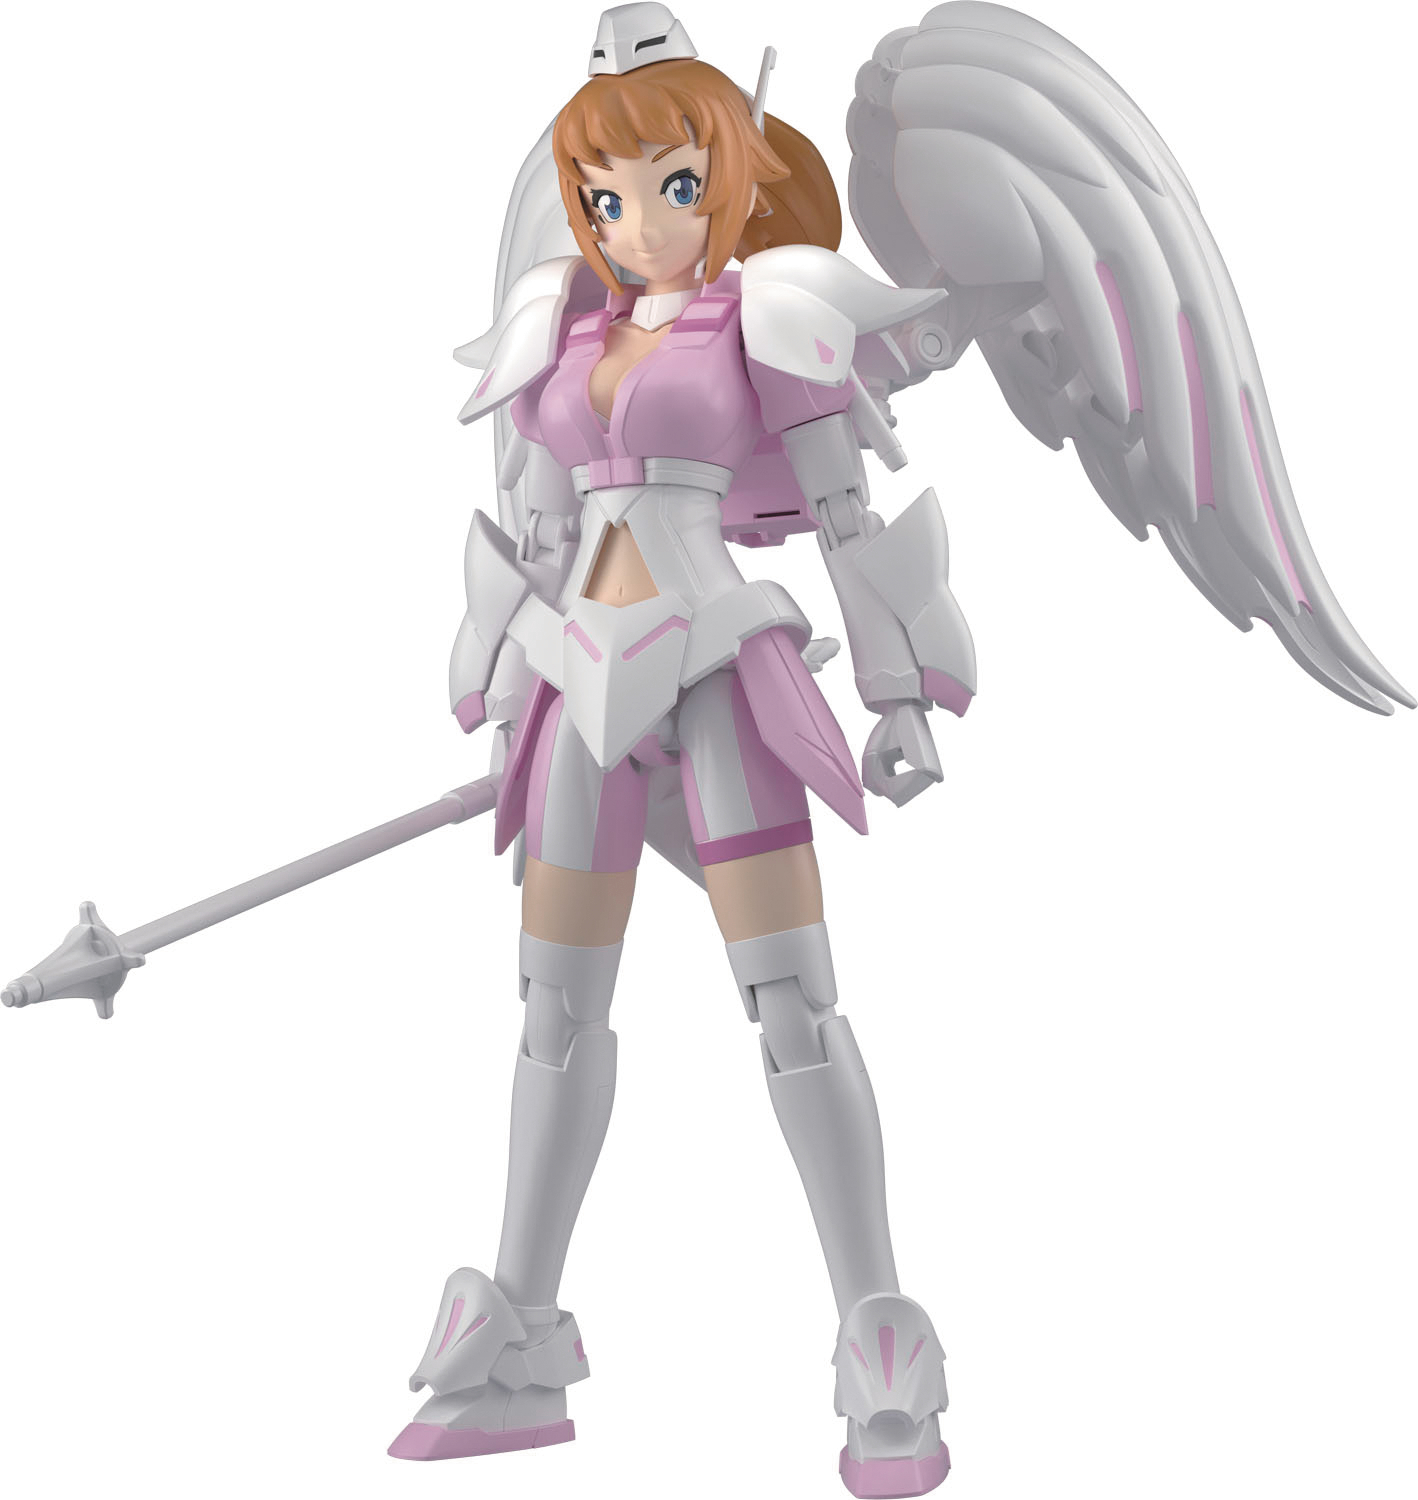 HGBF 1/144 SUPER FUMINA AXIS GBF MDL KIT ANGEL VER